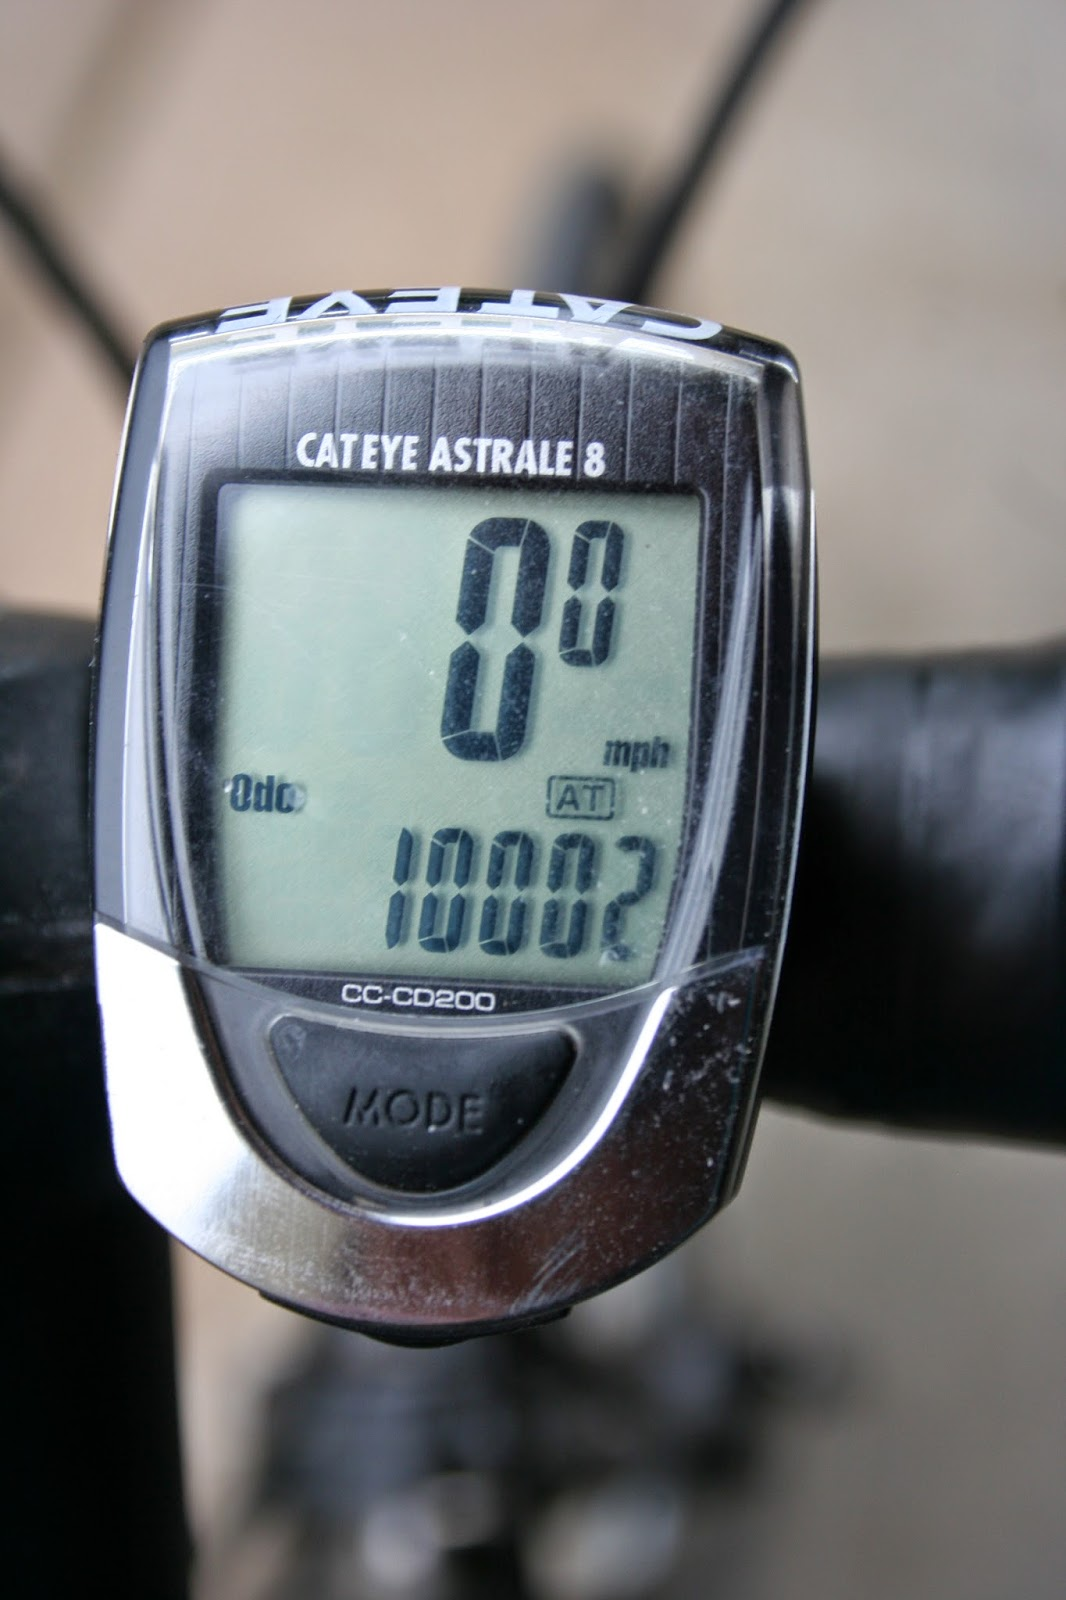 Ten thousand miles on a bicycle